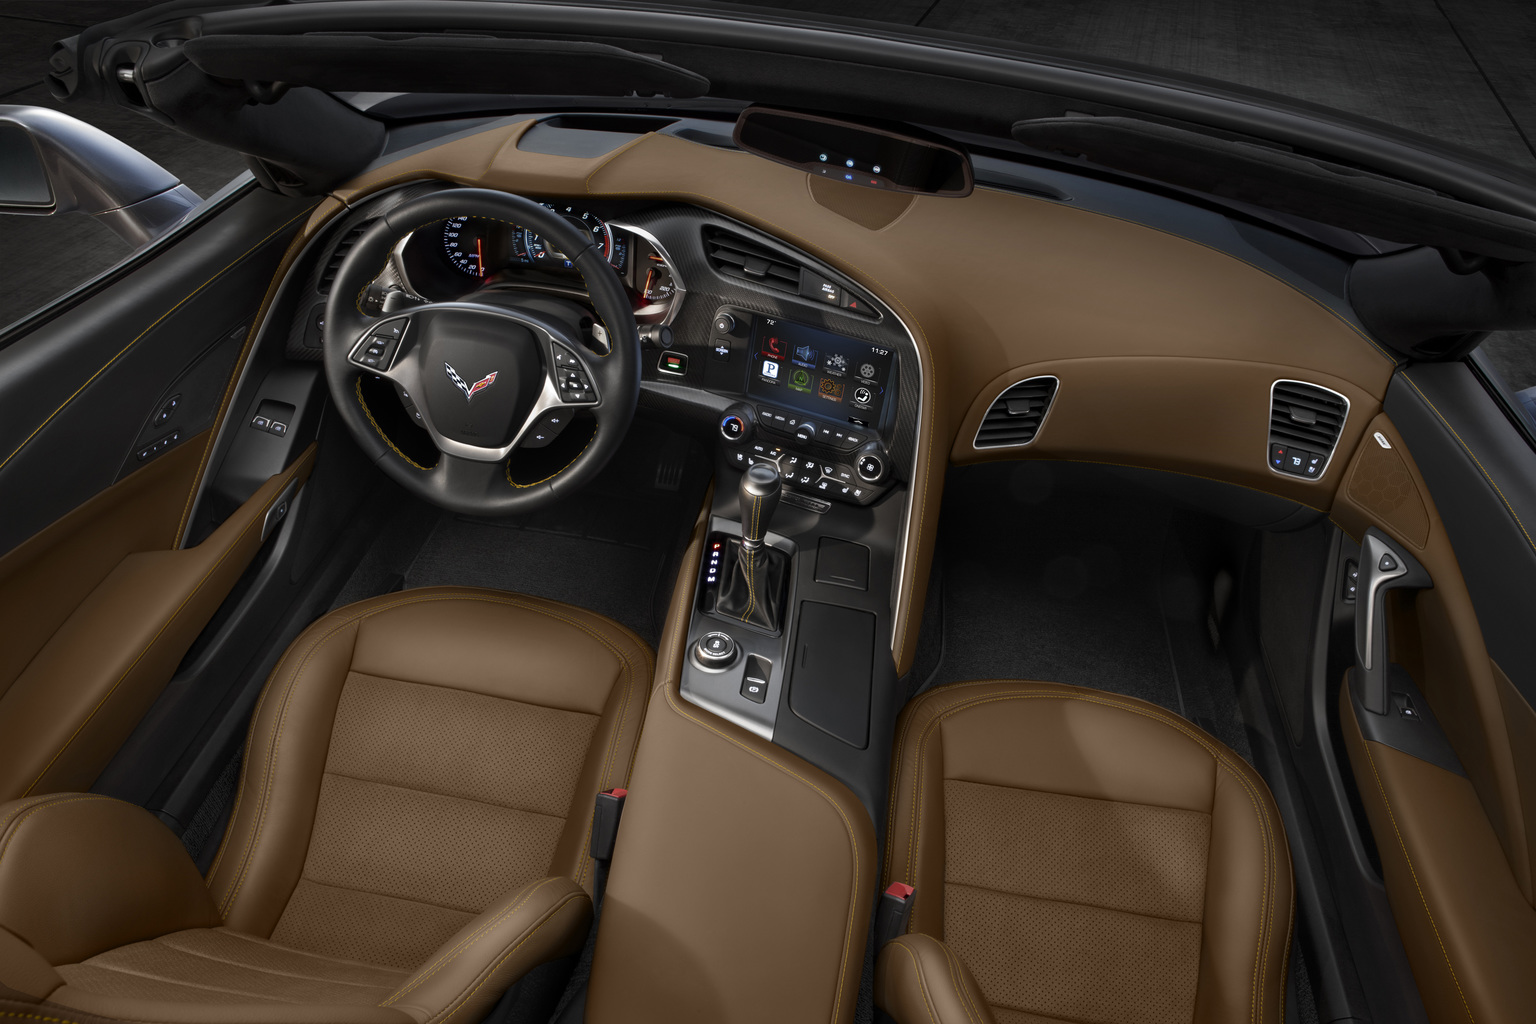 the all new 2014 chevrolet corvette stingray convertible interior blends fine materials and craftsmanship with advanced technologies to deliver a more - 2014 Chevrolet Corvette Stingray Convertible